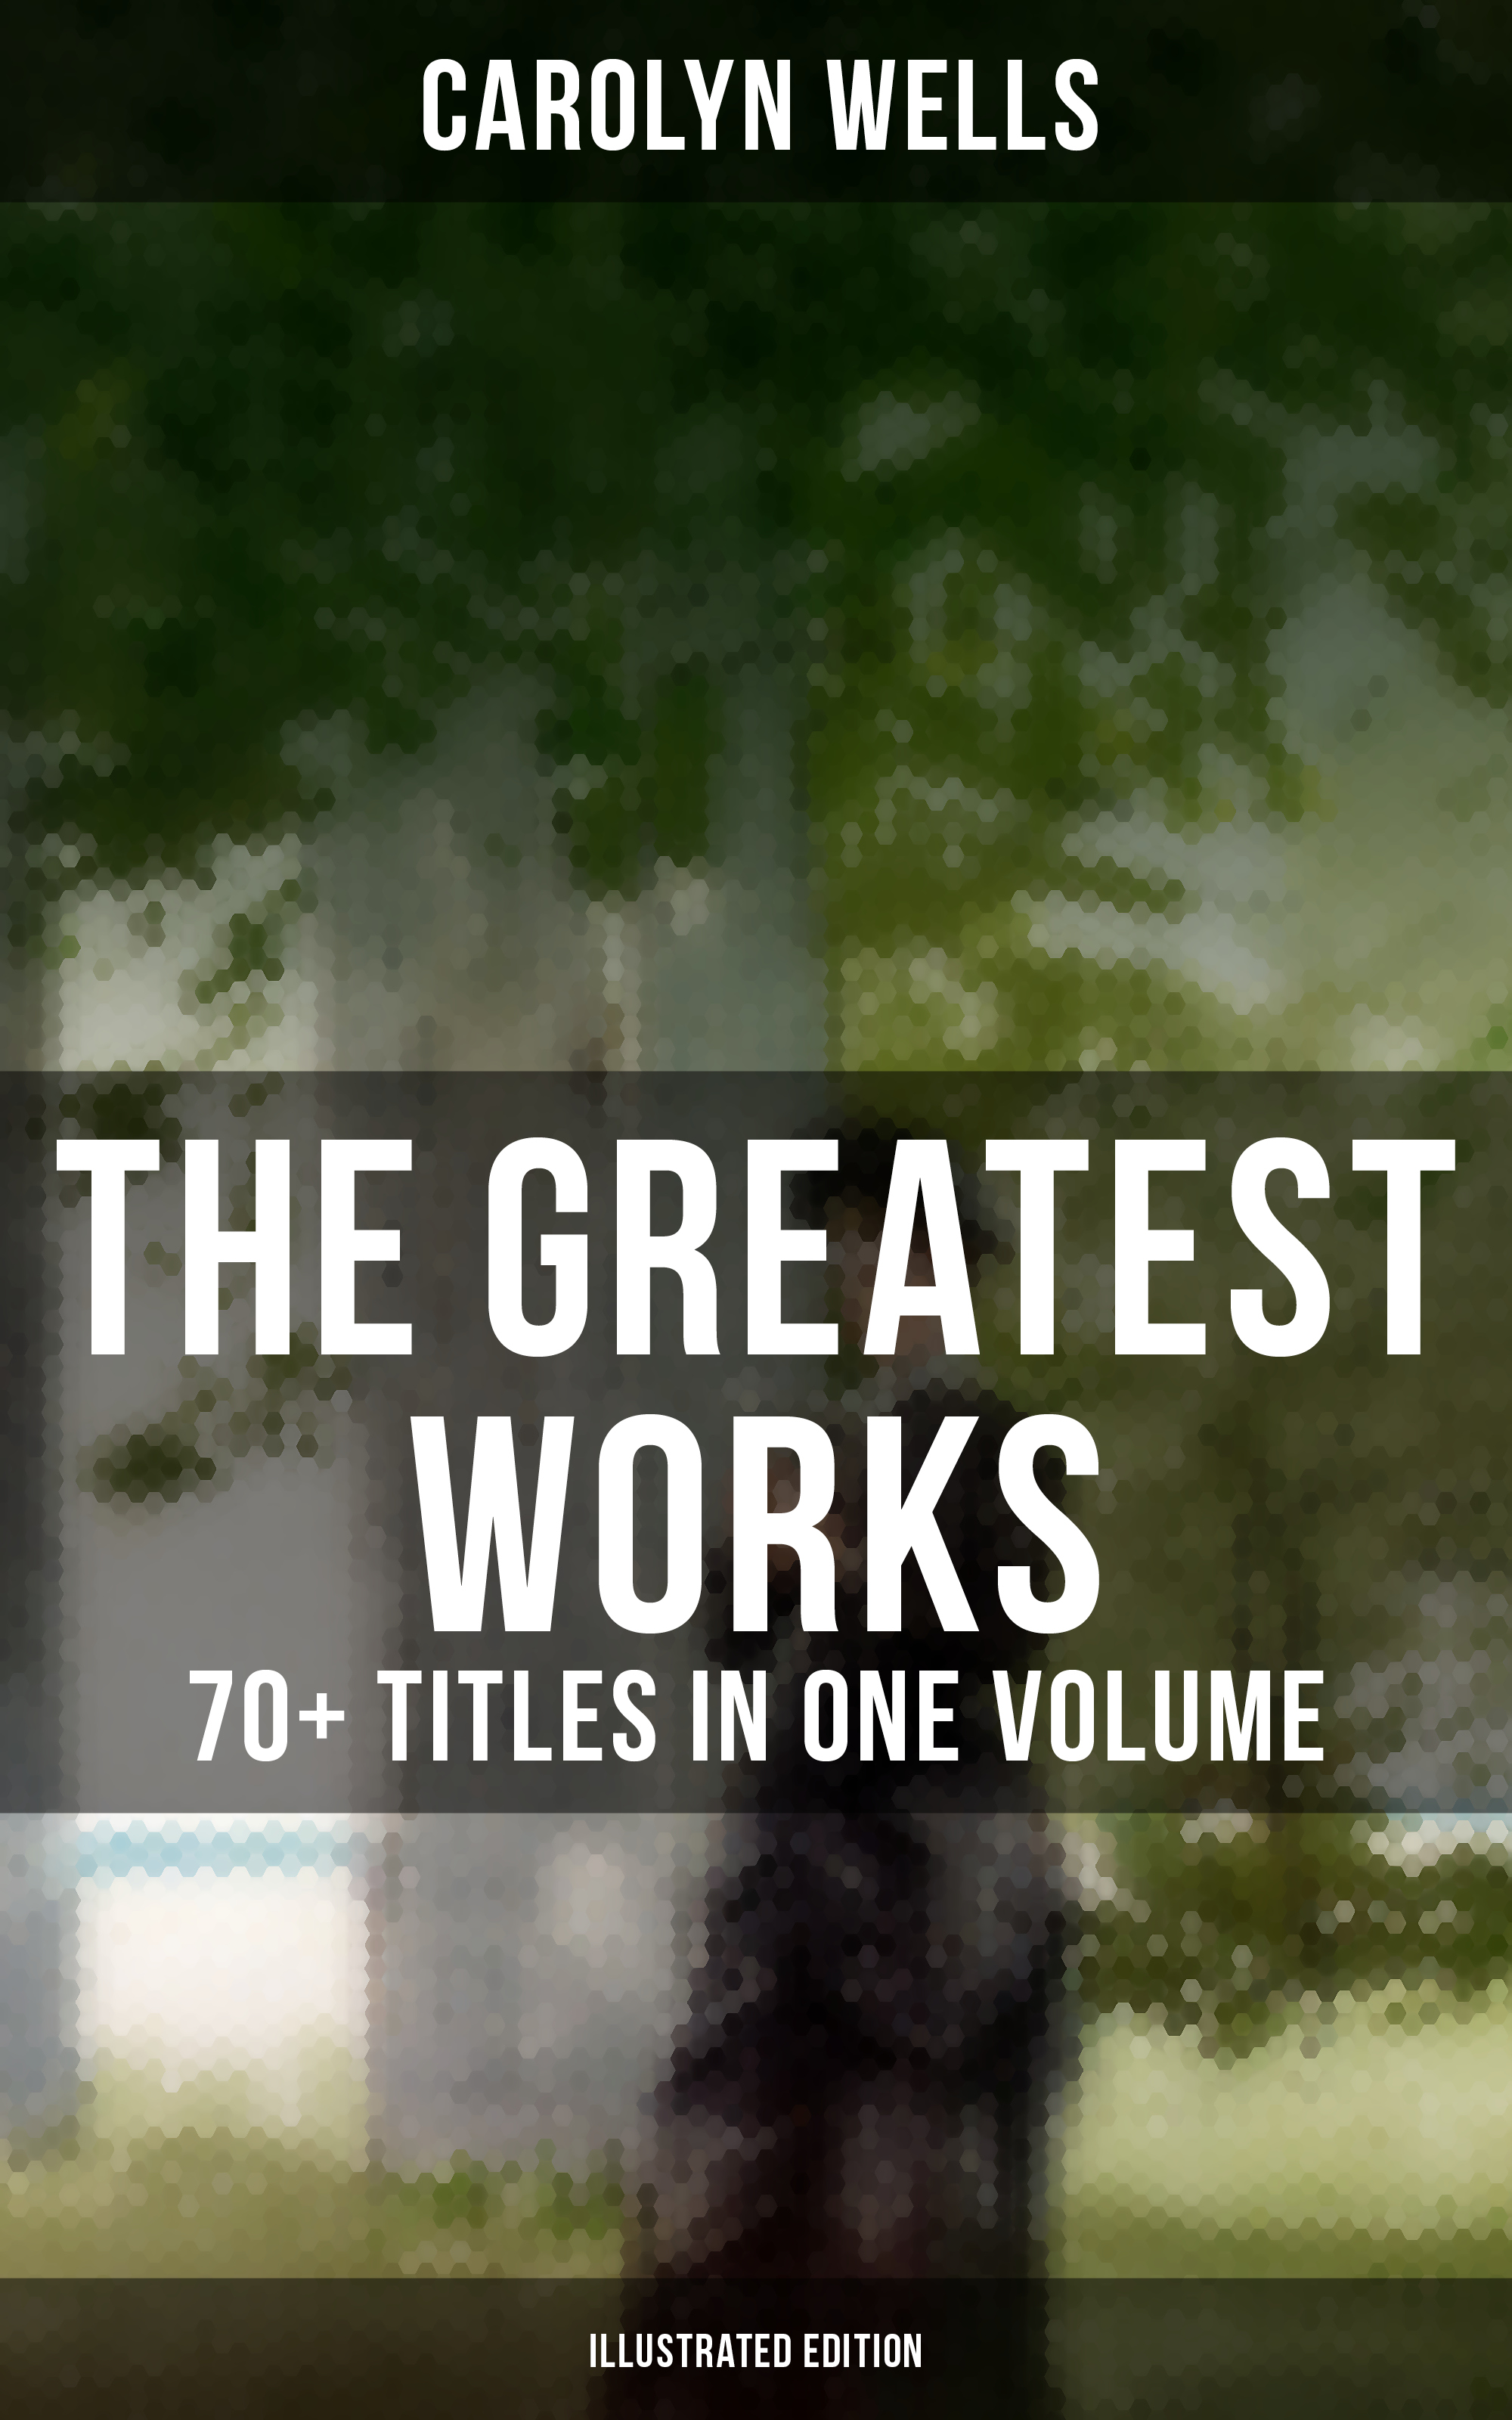 Carolyn Wells The Greatest Works of – 70+ Titles in One Volume (Illustrated Edition)